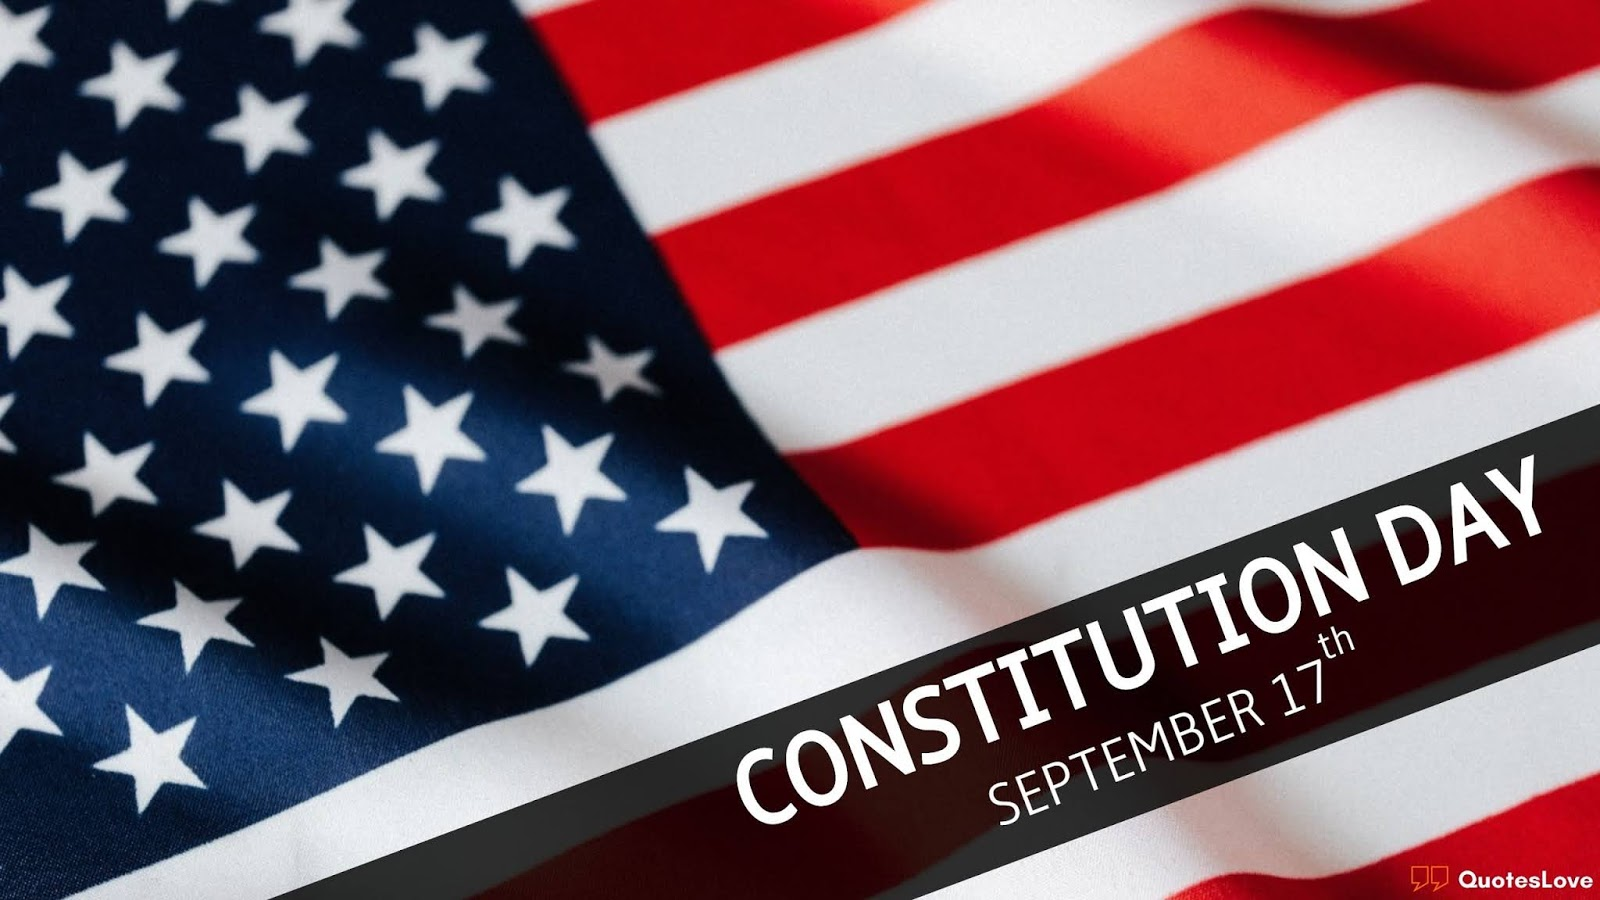 Constitution Day Quotes, Slogan, Meaning, Wishes, Greetings, Message, Images, Pictures, Poster, Wallpaper